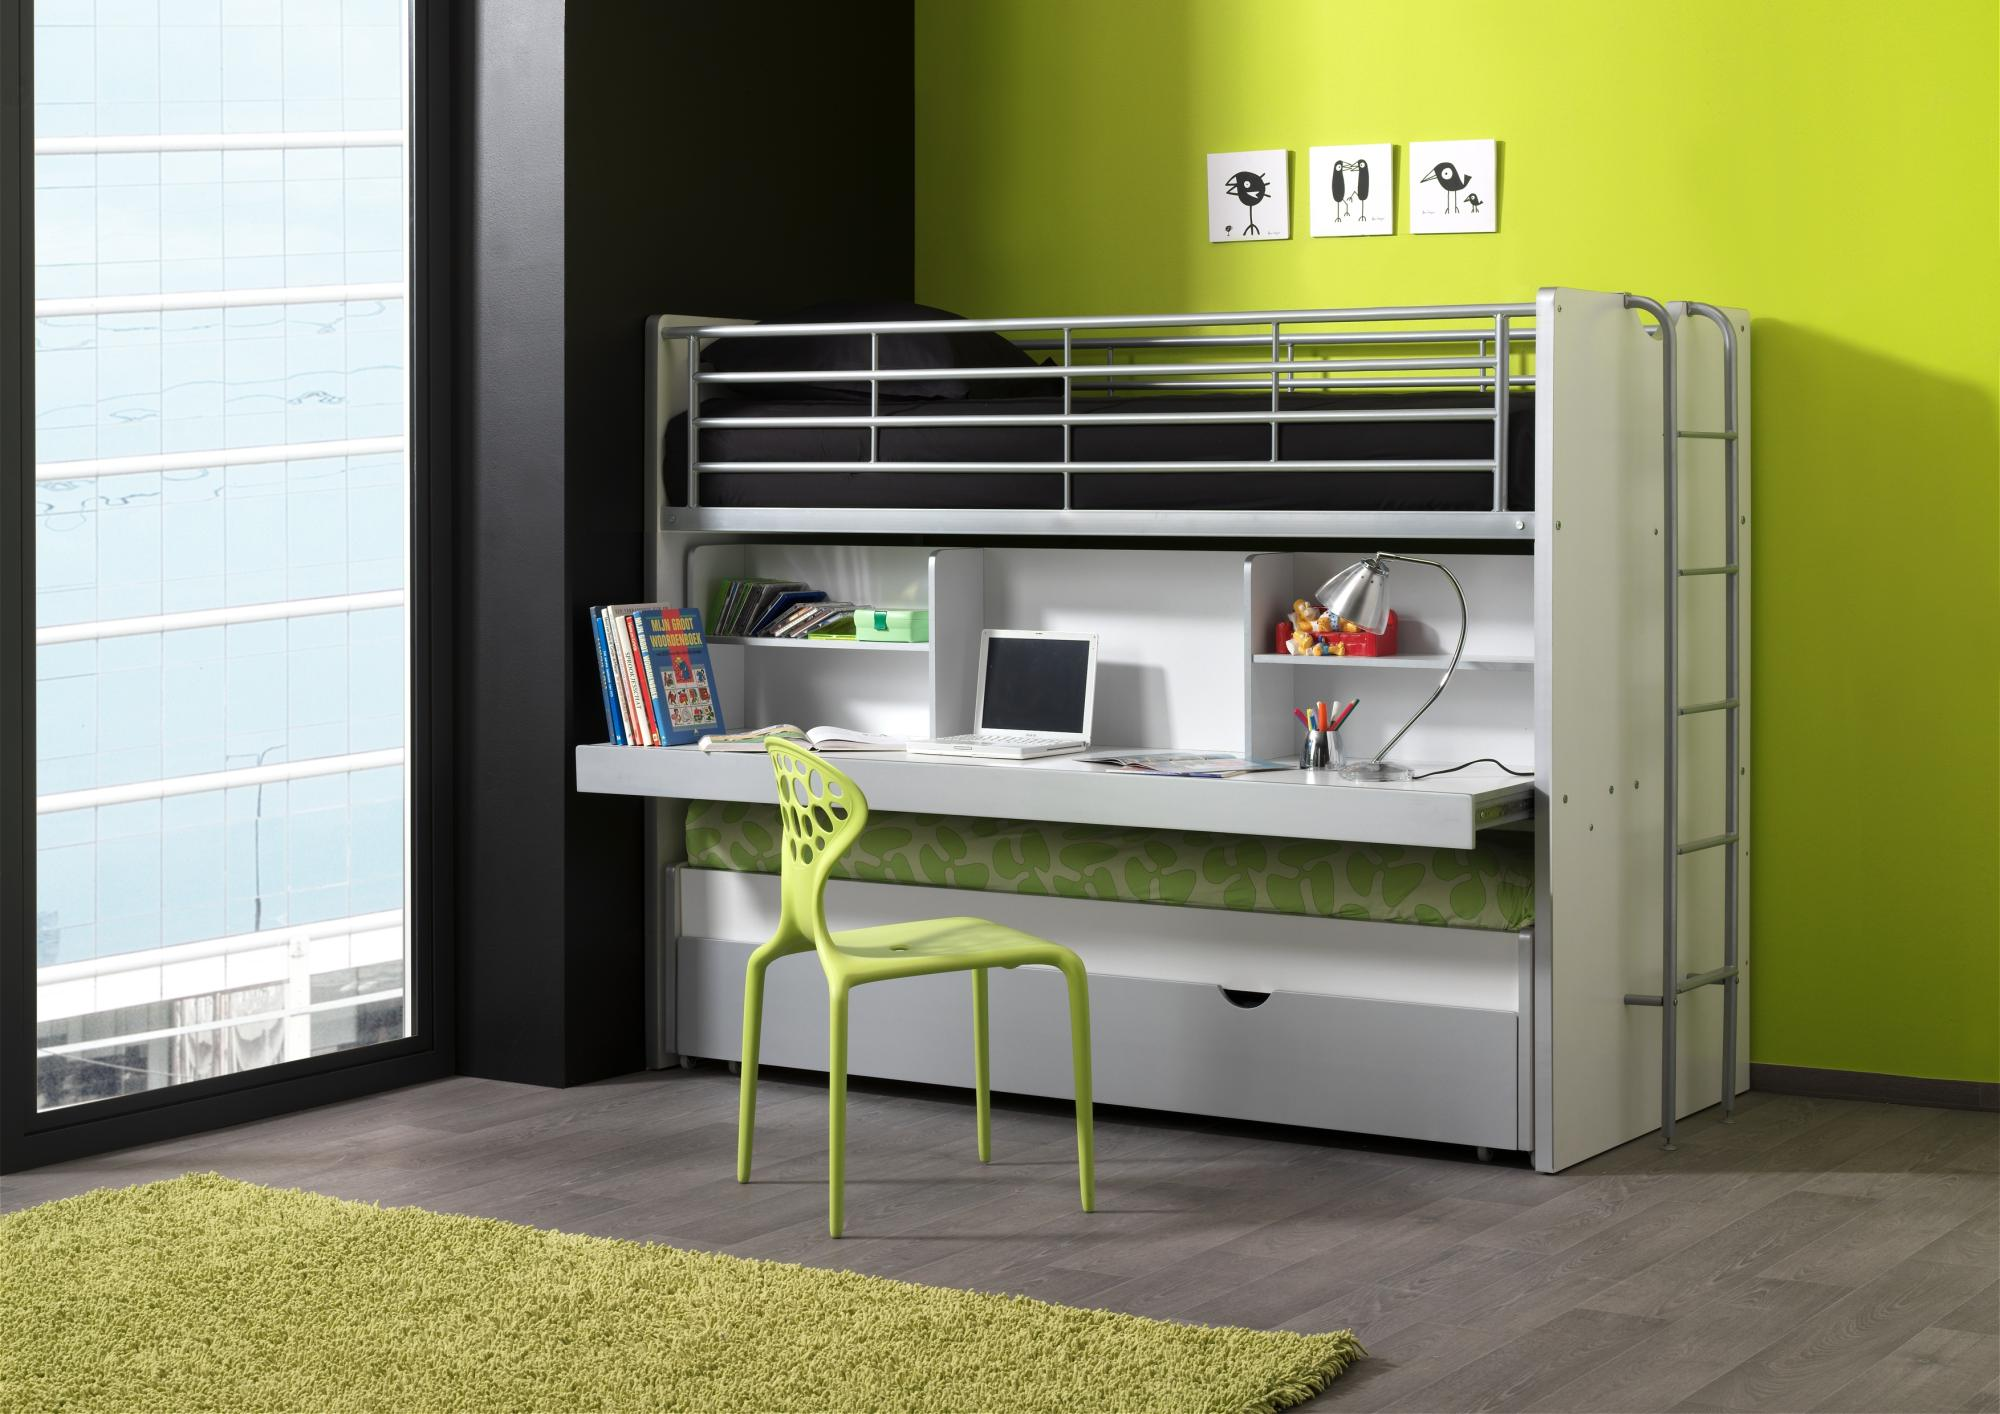 lits enfant superpos s combin avec tiroir lit blanc. Black Bedroom Furniture Sets. Home Design Ideas